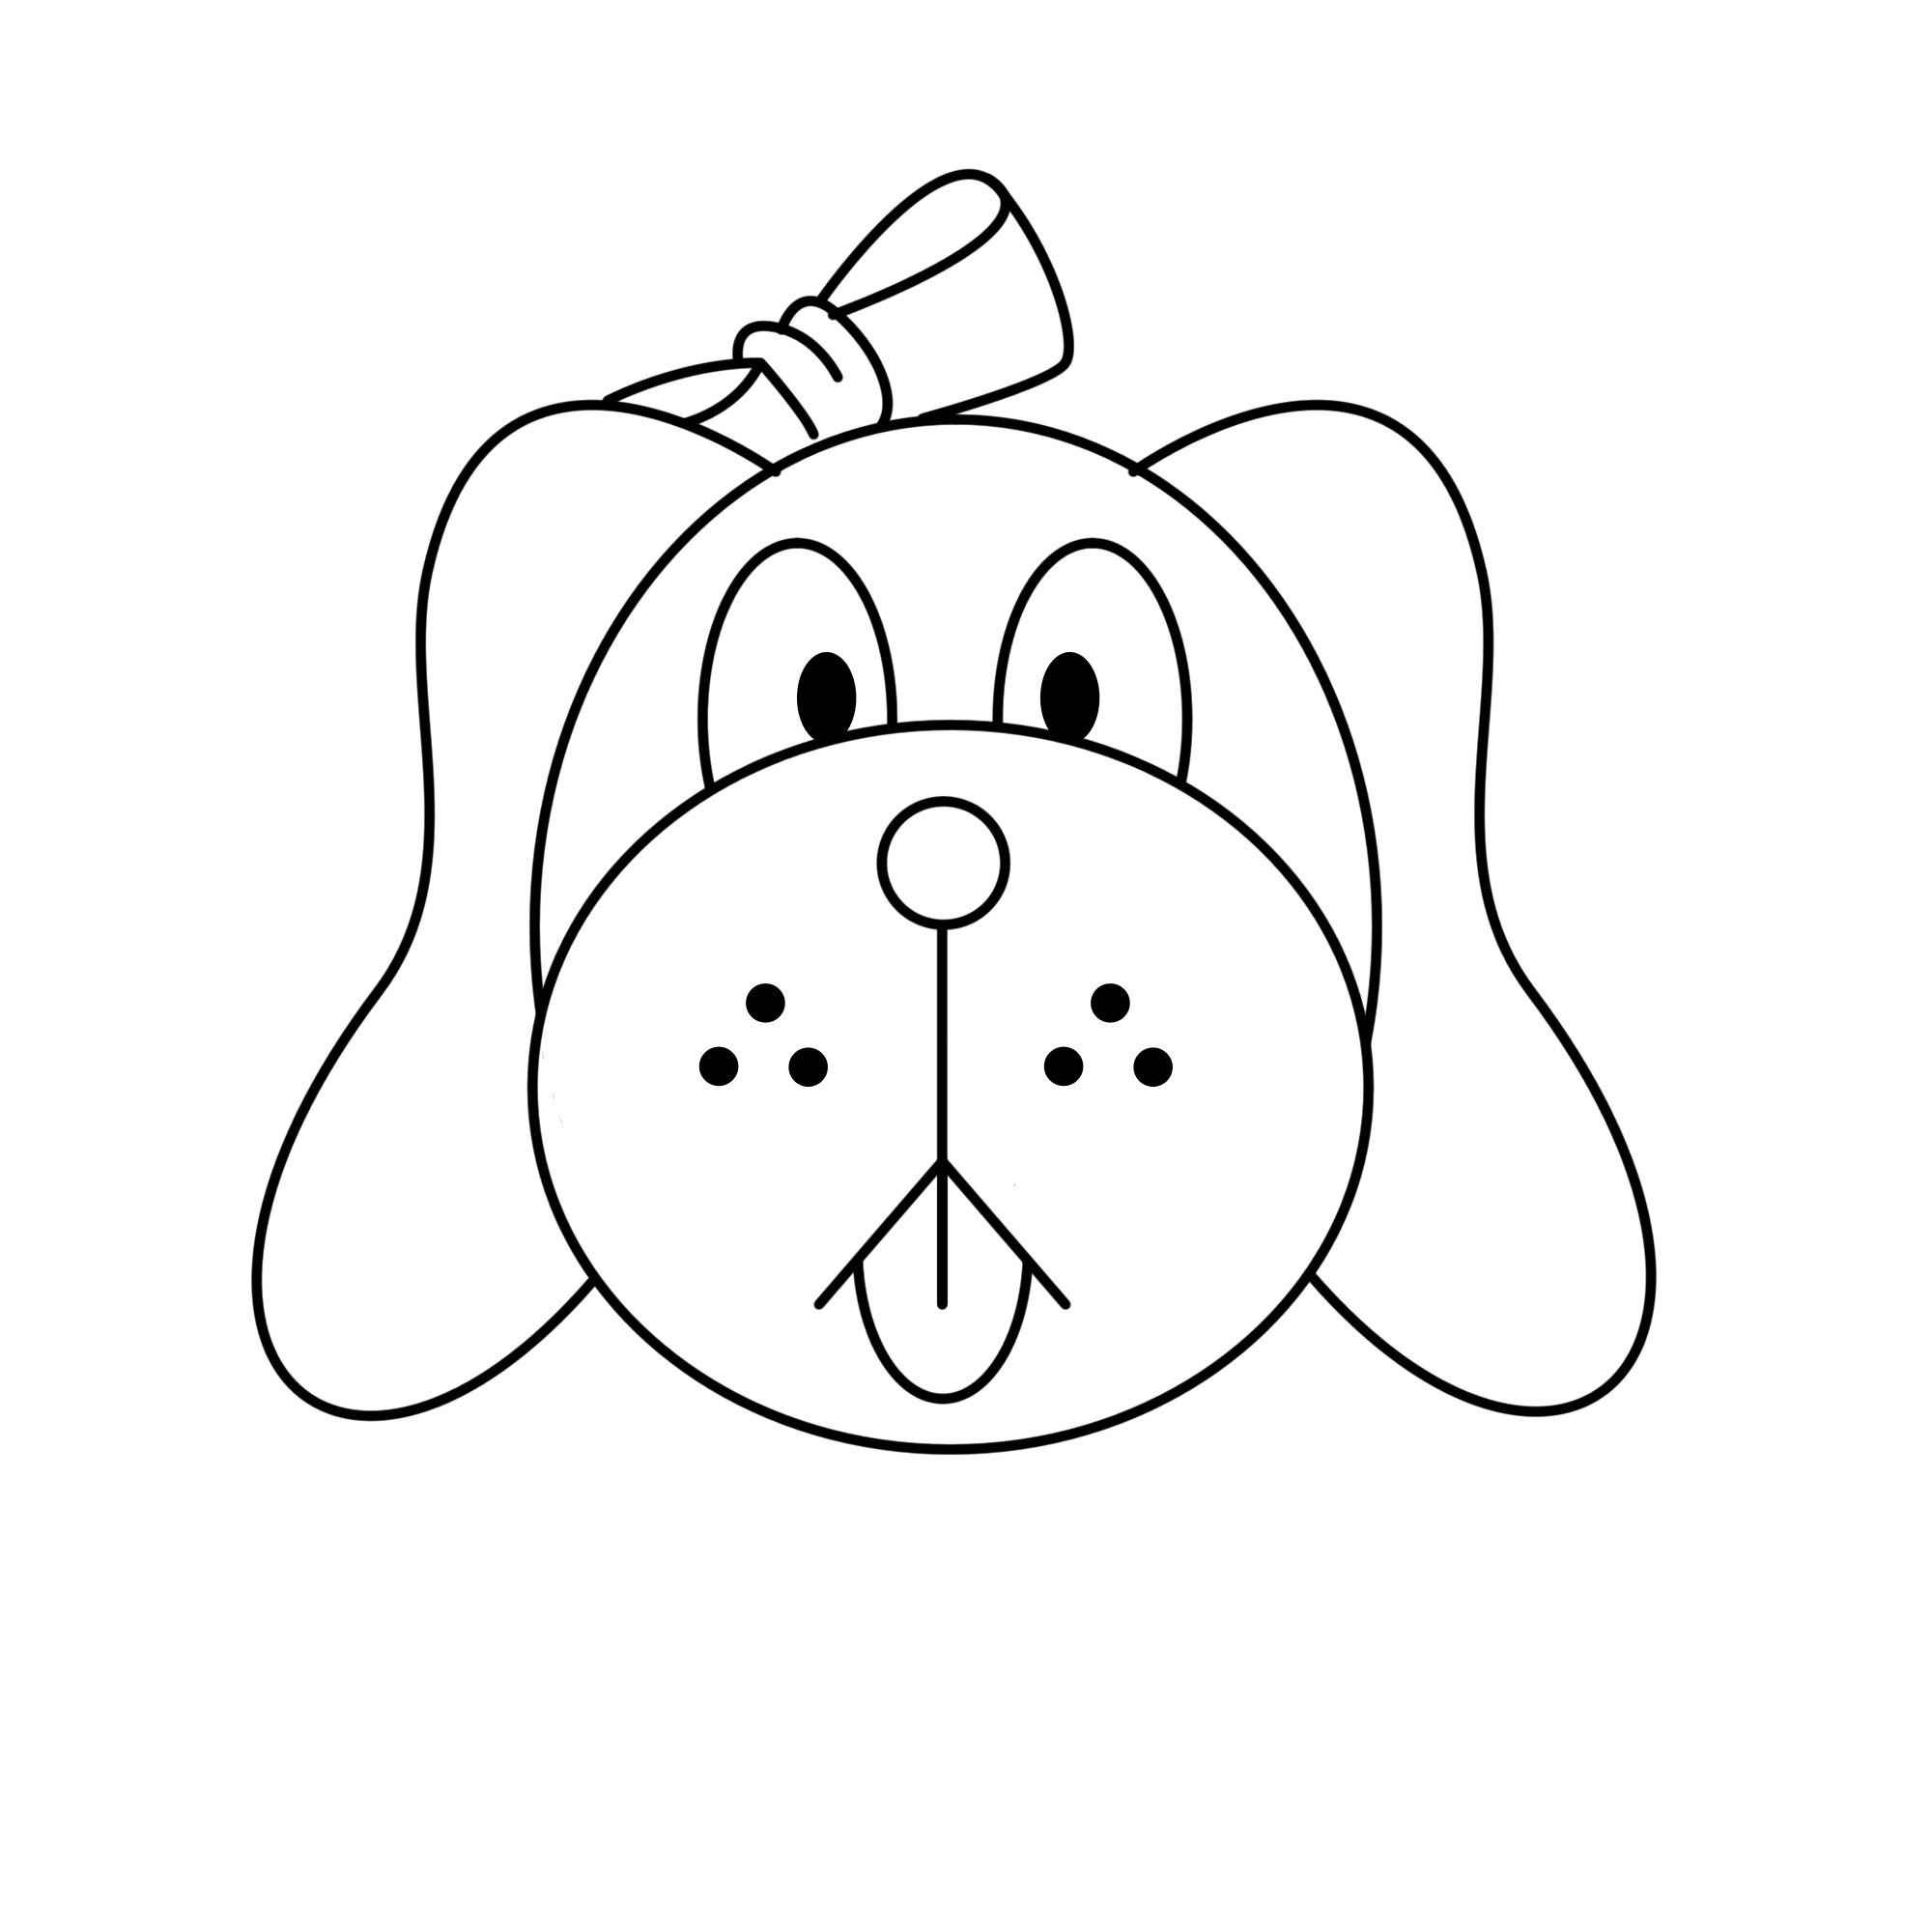 2000x2000 Cartoon Drawings Of Dogs And Cats